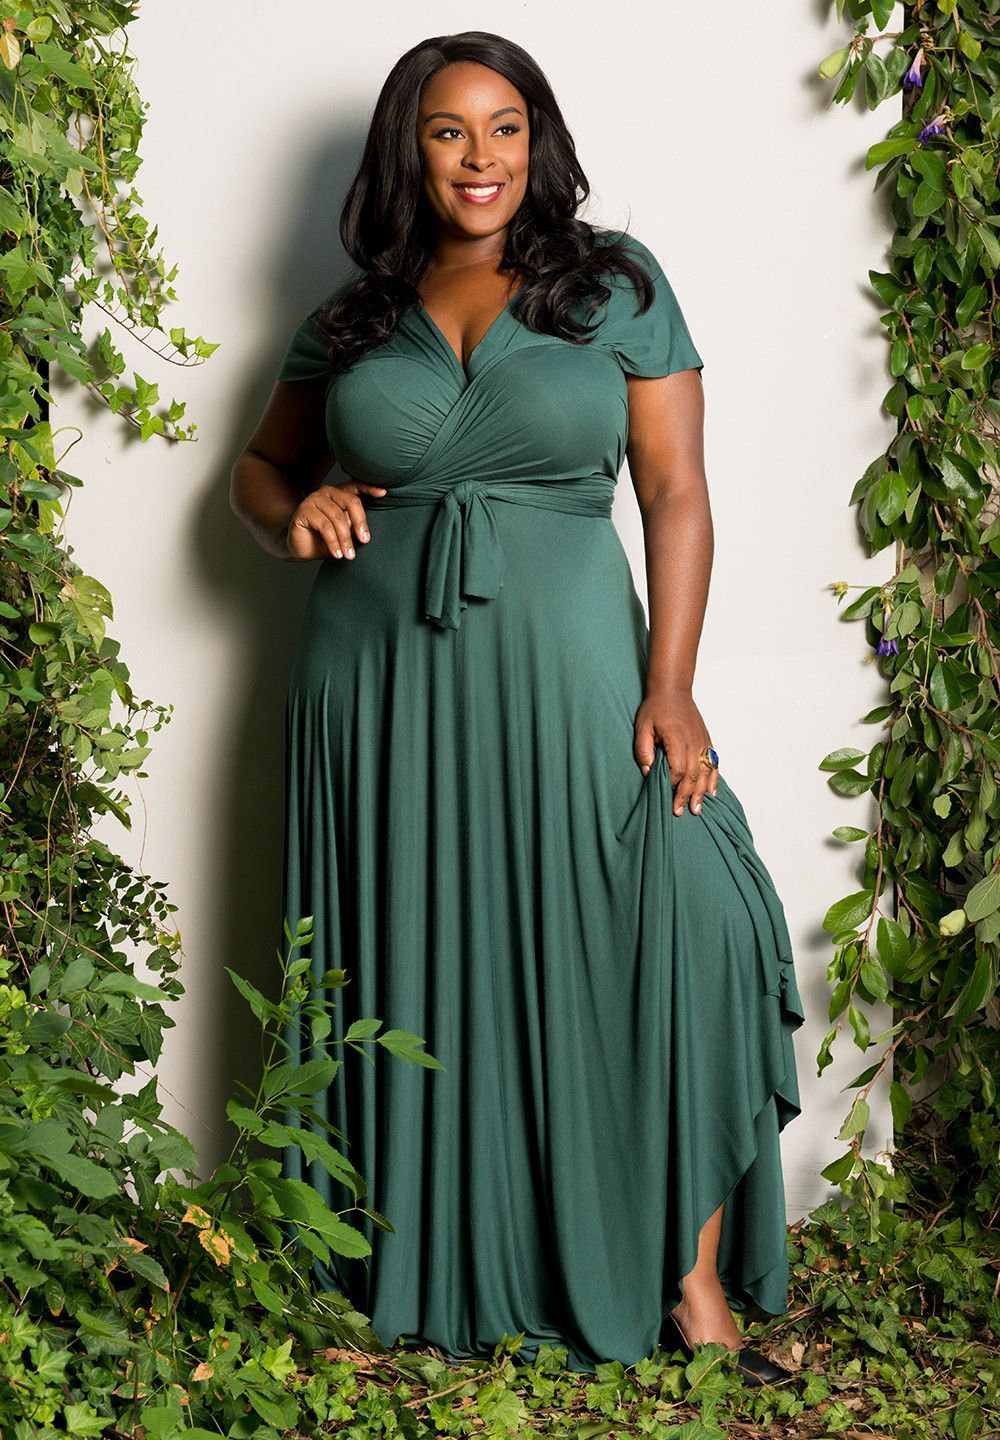 Eternity Convertible Maxi Dress - Forest